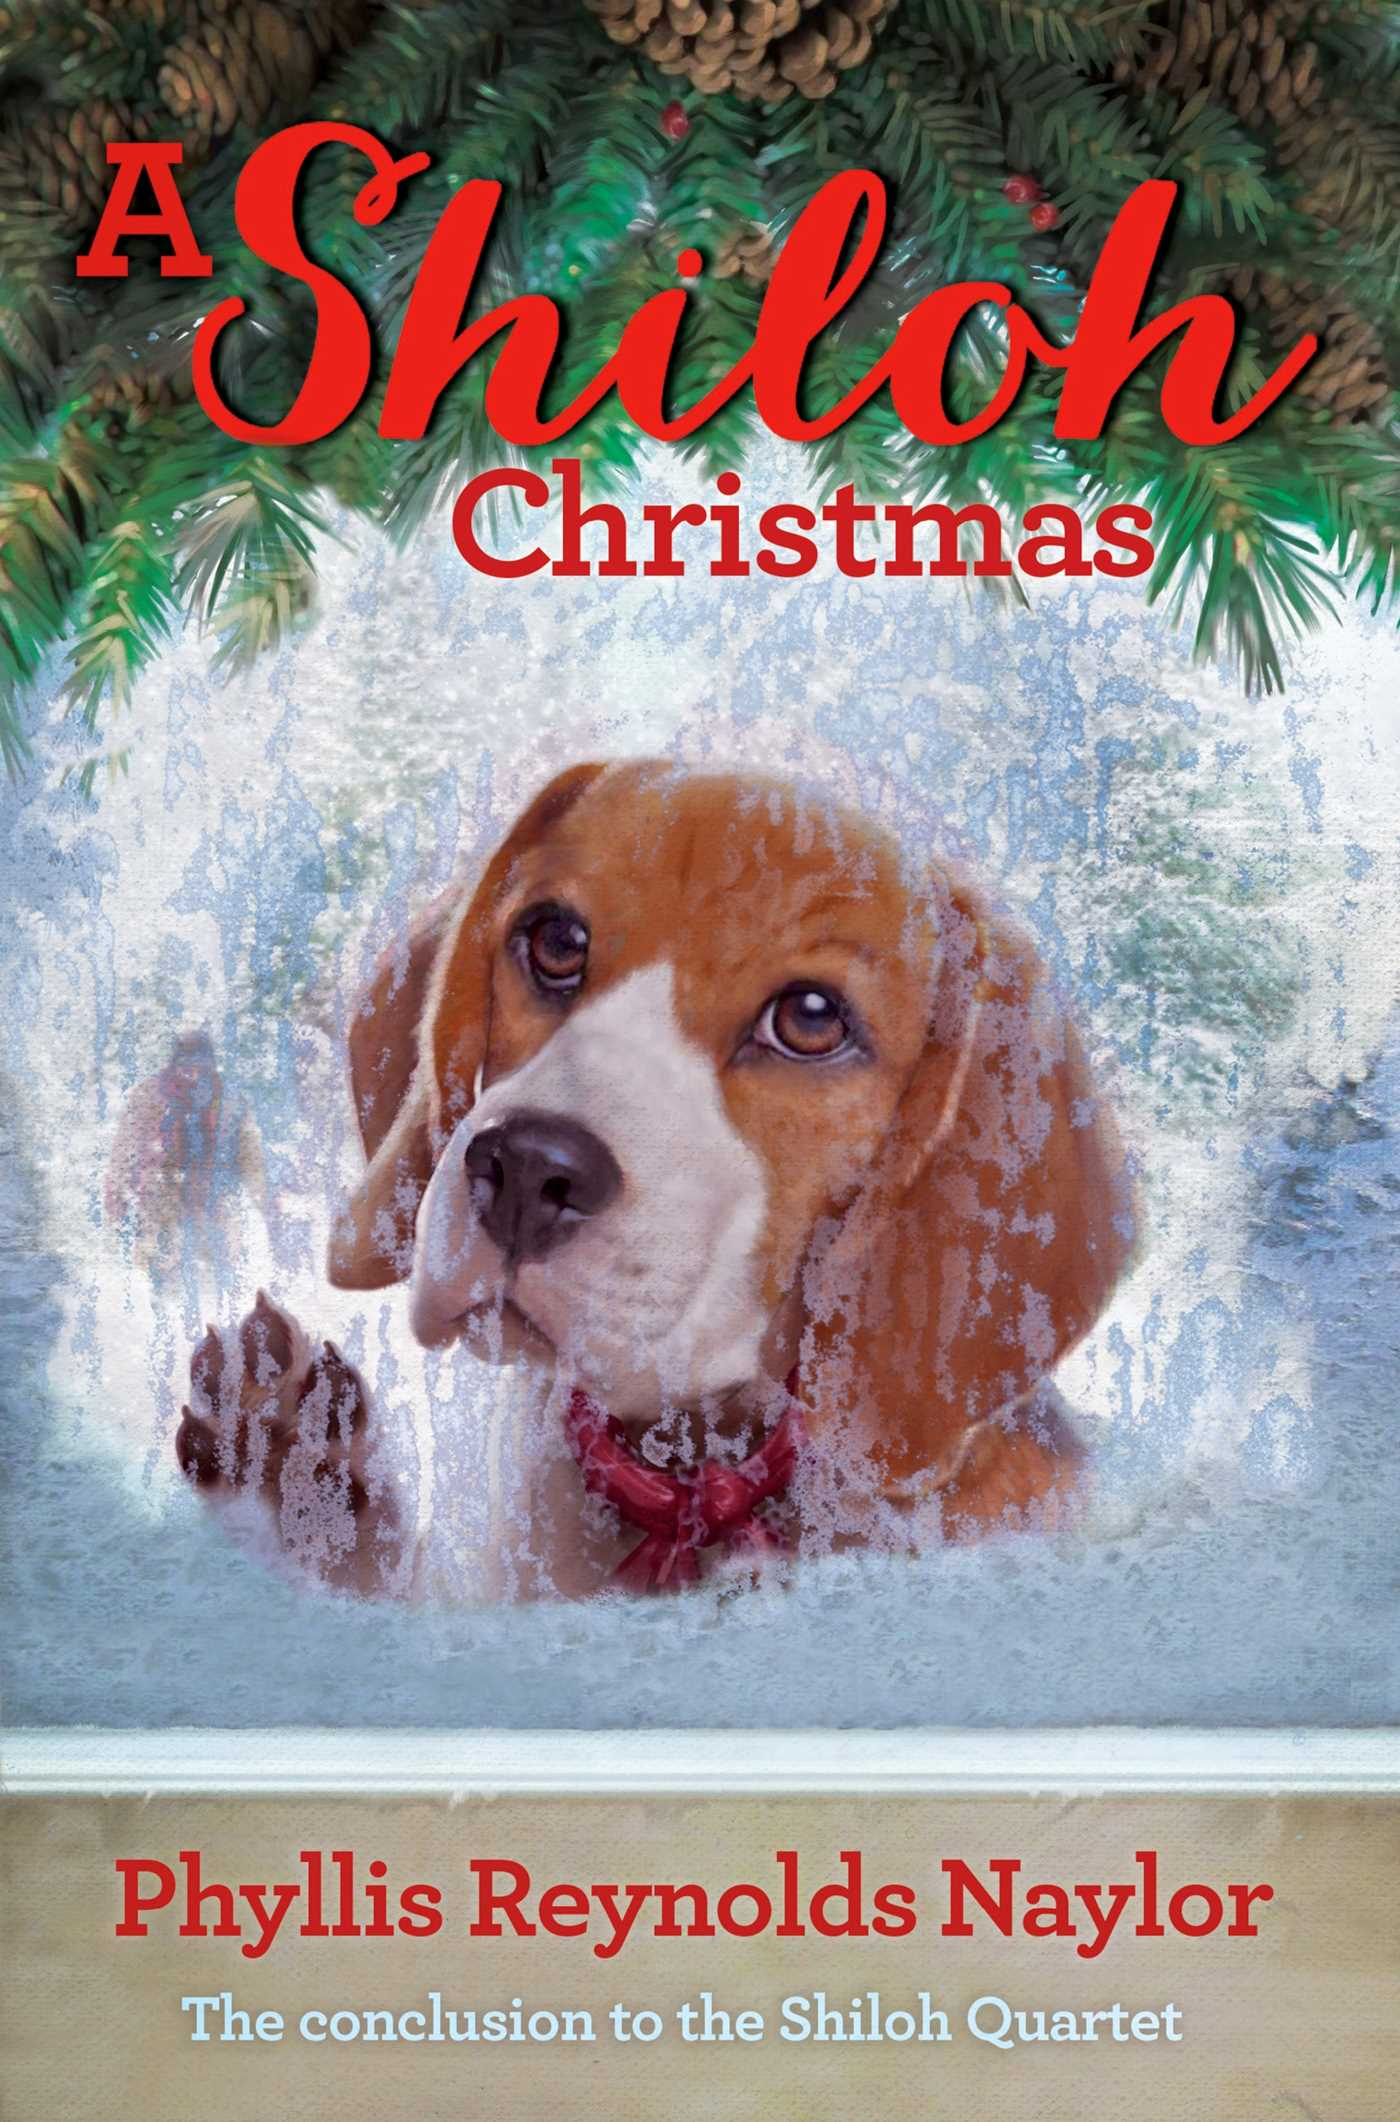 A shiloh christmas 9781481441544 hr